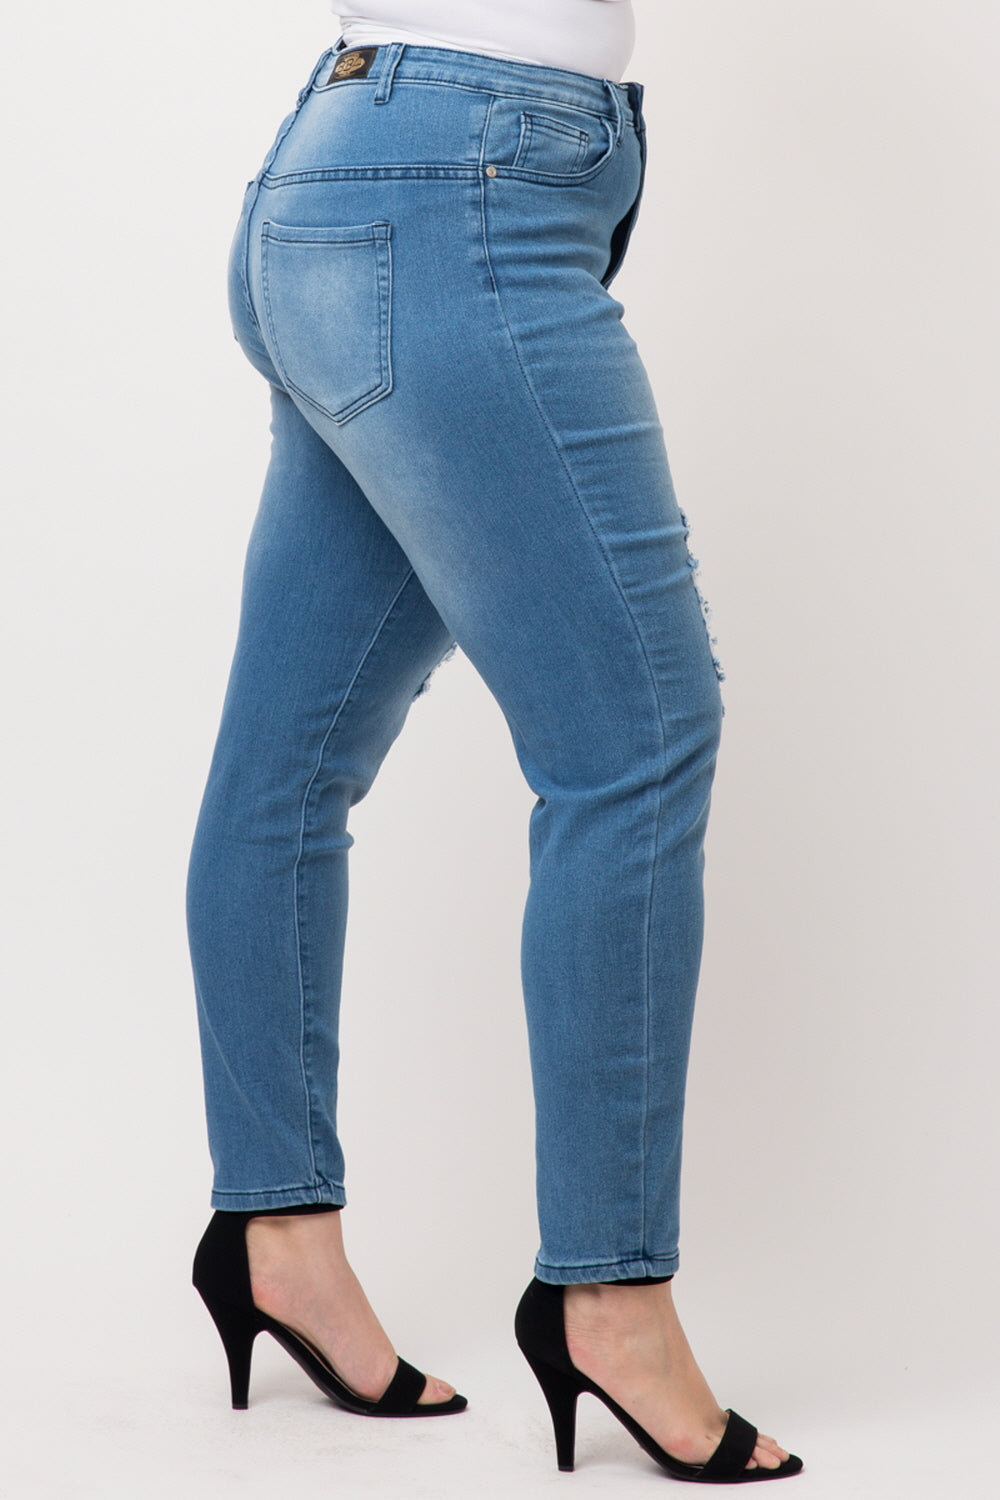 Plus Size High Waist Ripped Distressed Washed Skinny Stretched Cotton Denim Jeans